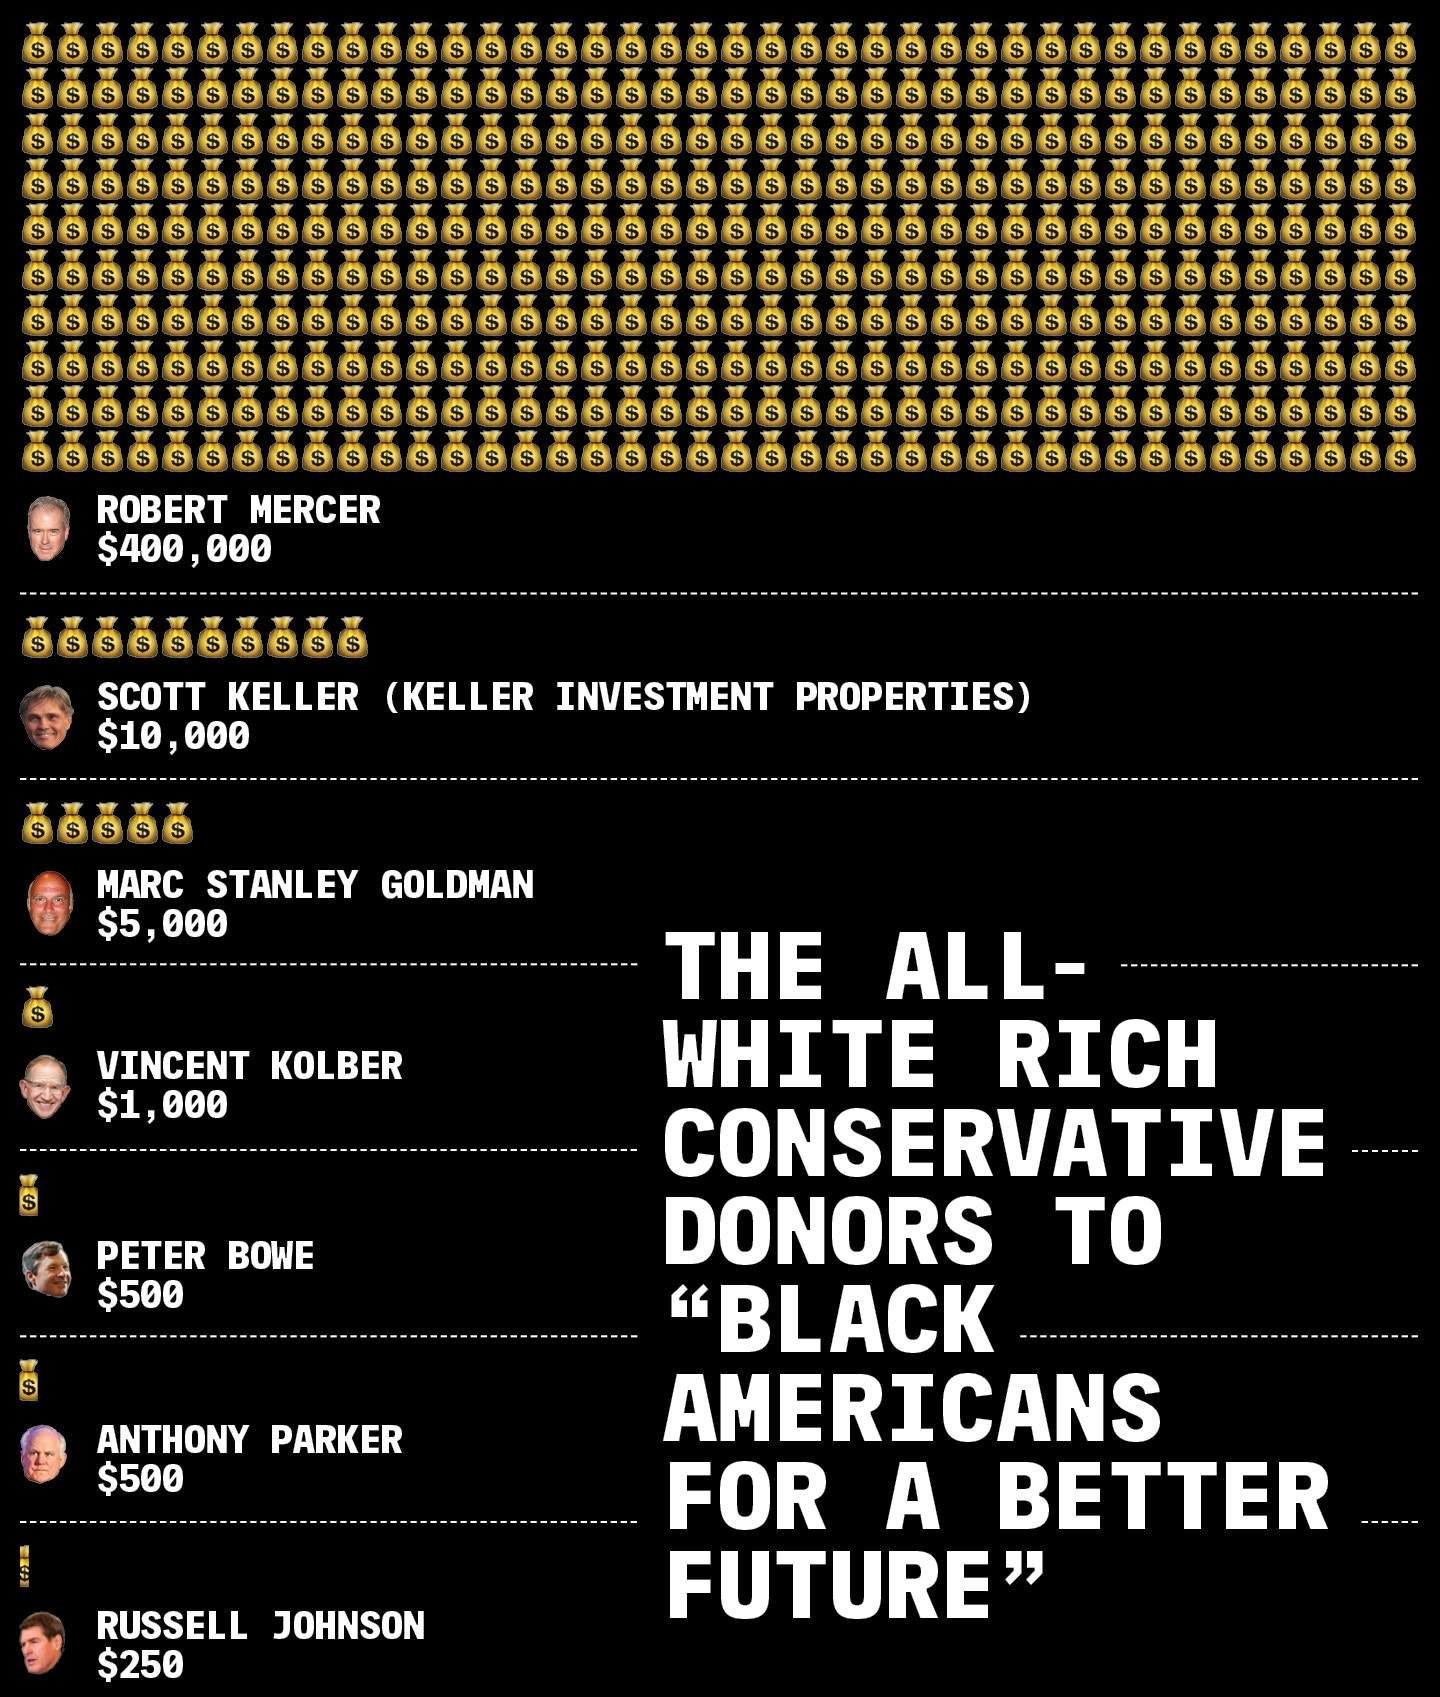 donors-theintercept-graphic-v2